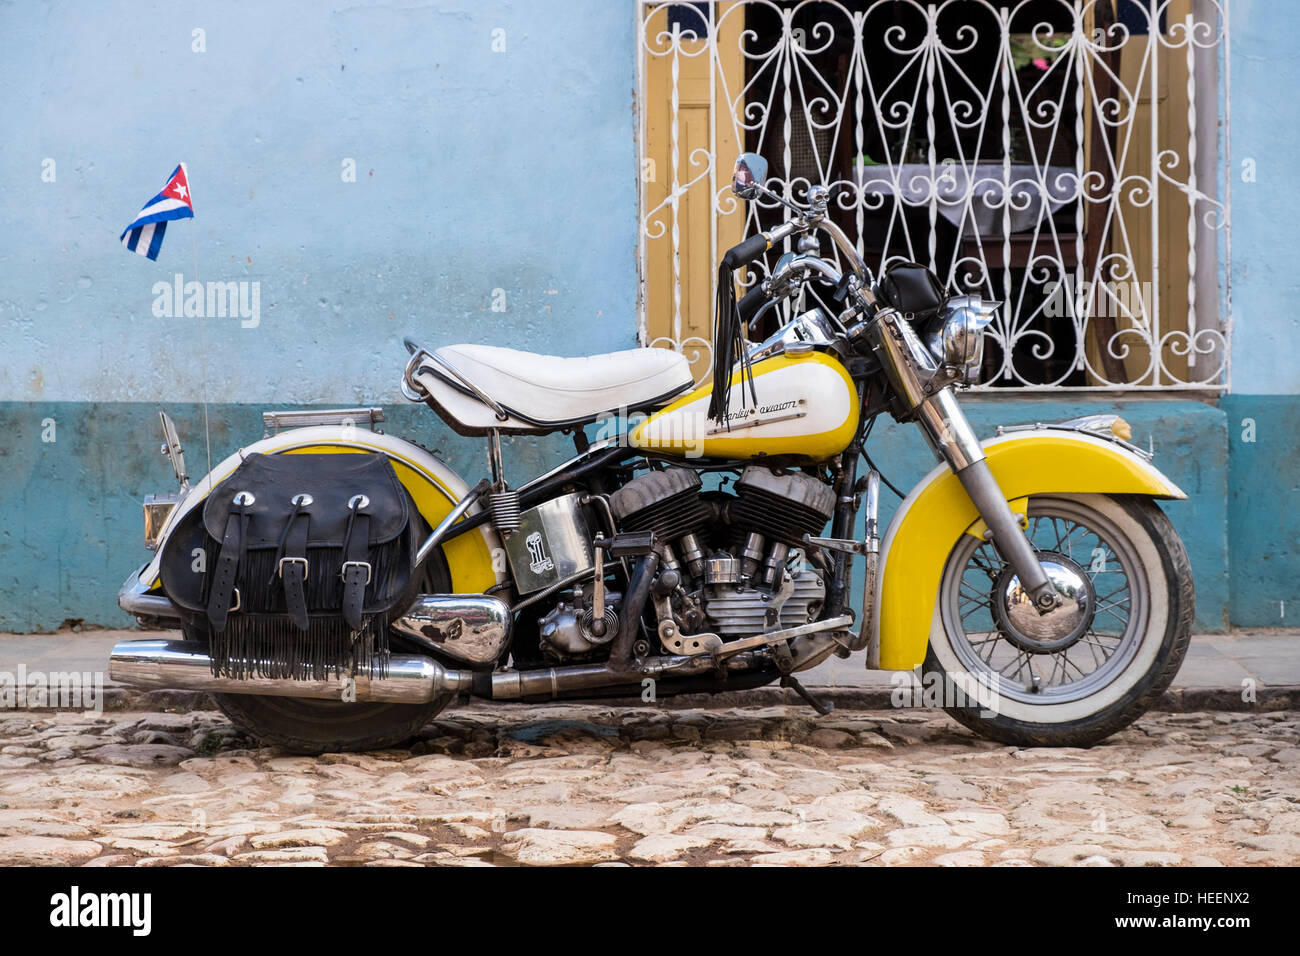 Harley Davidson motorcycle from the 1950s parked in Trinidad, Cuba - Stock Image